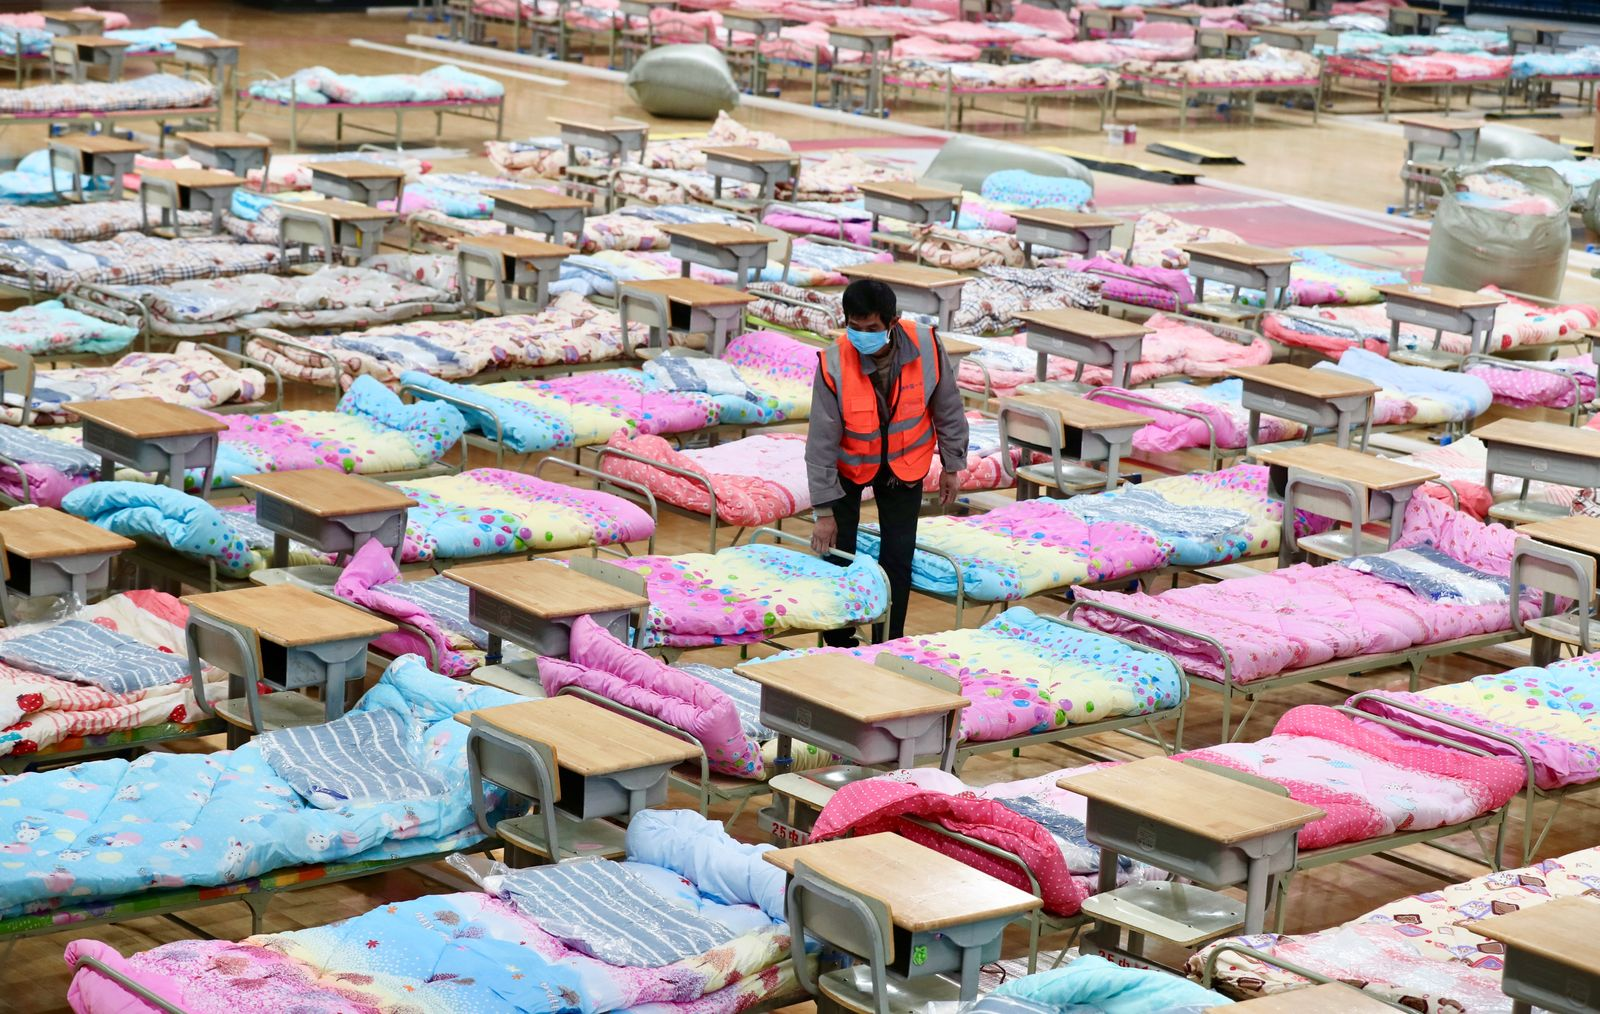 Worker sets up beds at the Hongshan Stadium to convert it into a makeshift hospital following an outbreak of the new coronavirus, in Wuhan